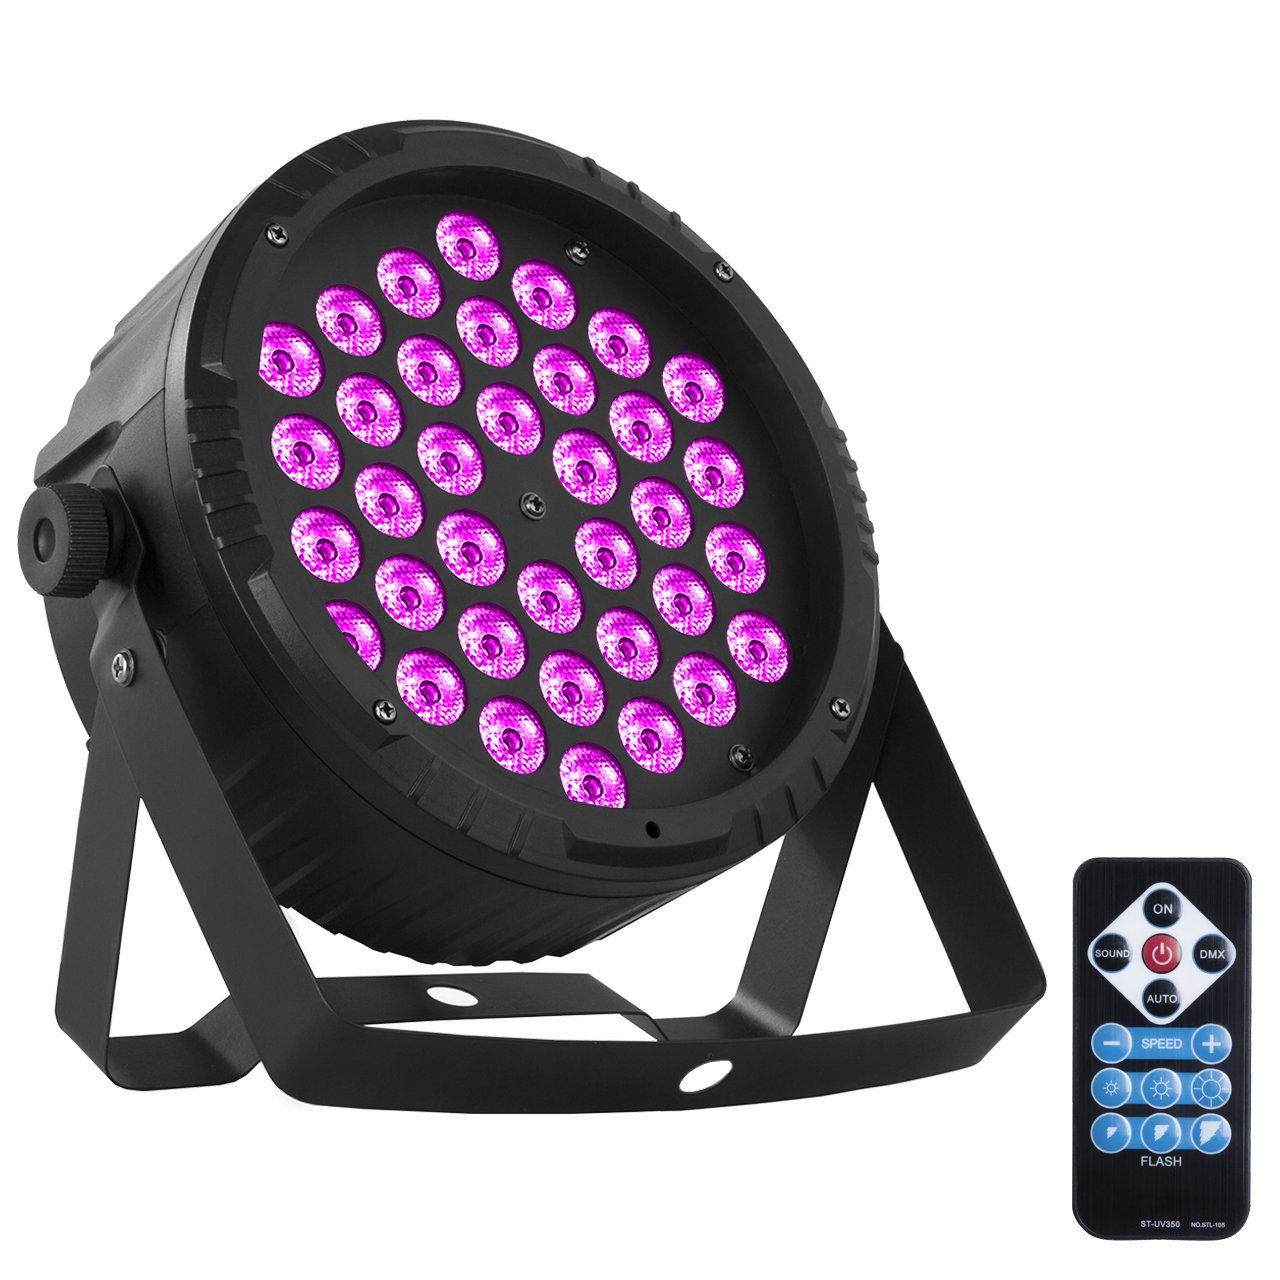 Eyourlife 36LED Blacklight UV LED Stage Light Par Lights DMX Black Light DJ Lighting for Glow Party Wall Decor Neon Paint Dance Floor Disco Bar Concert Karaoke